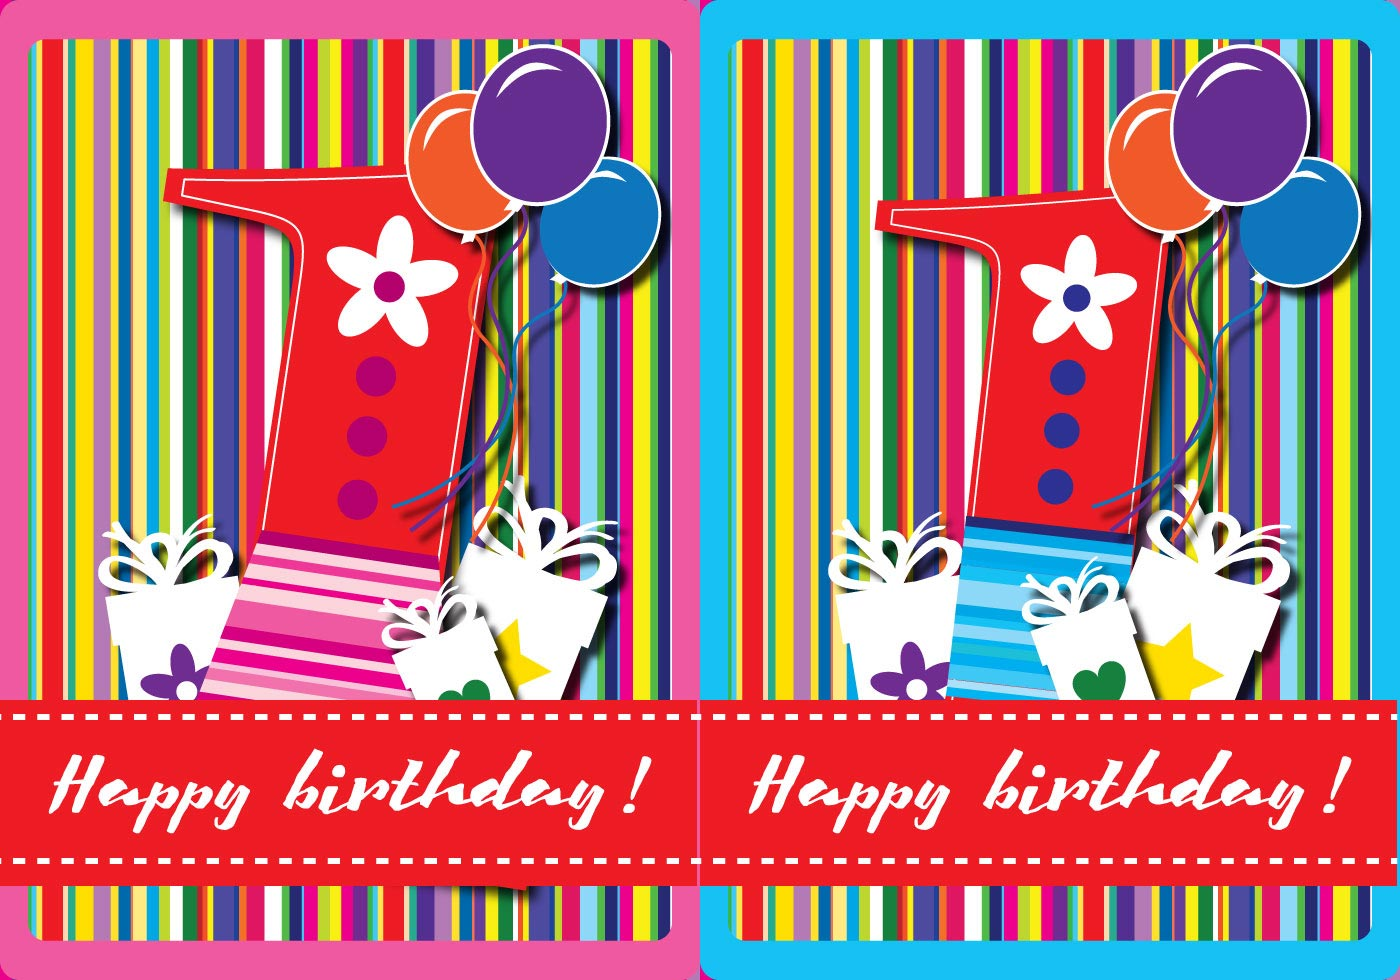 Happy first birthday card download free vector art stock graphics happy first birthday card download free vector art stock graphics images filmwisefo